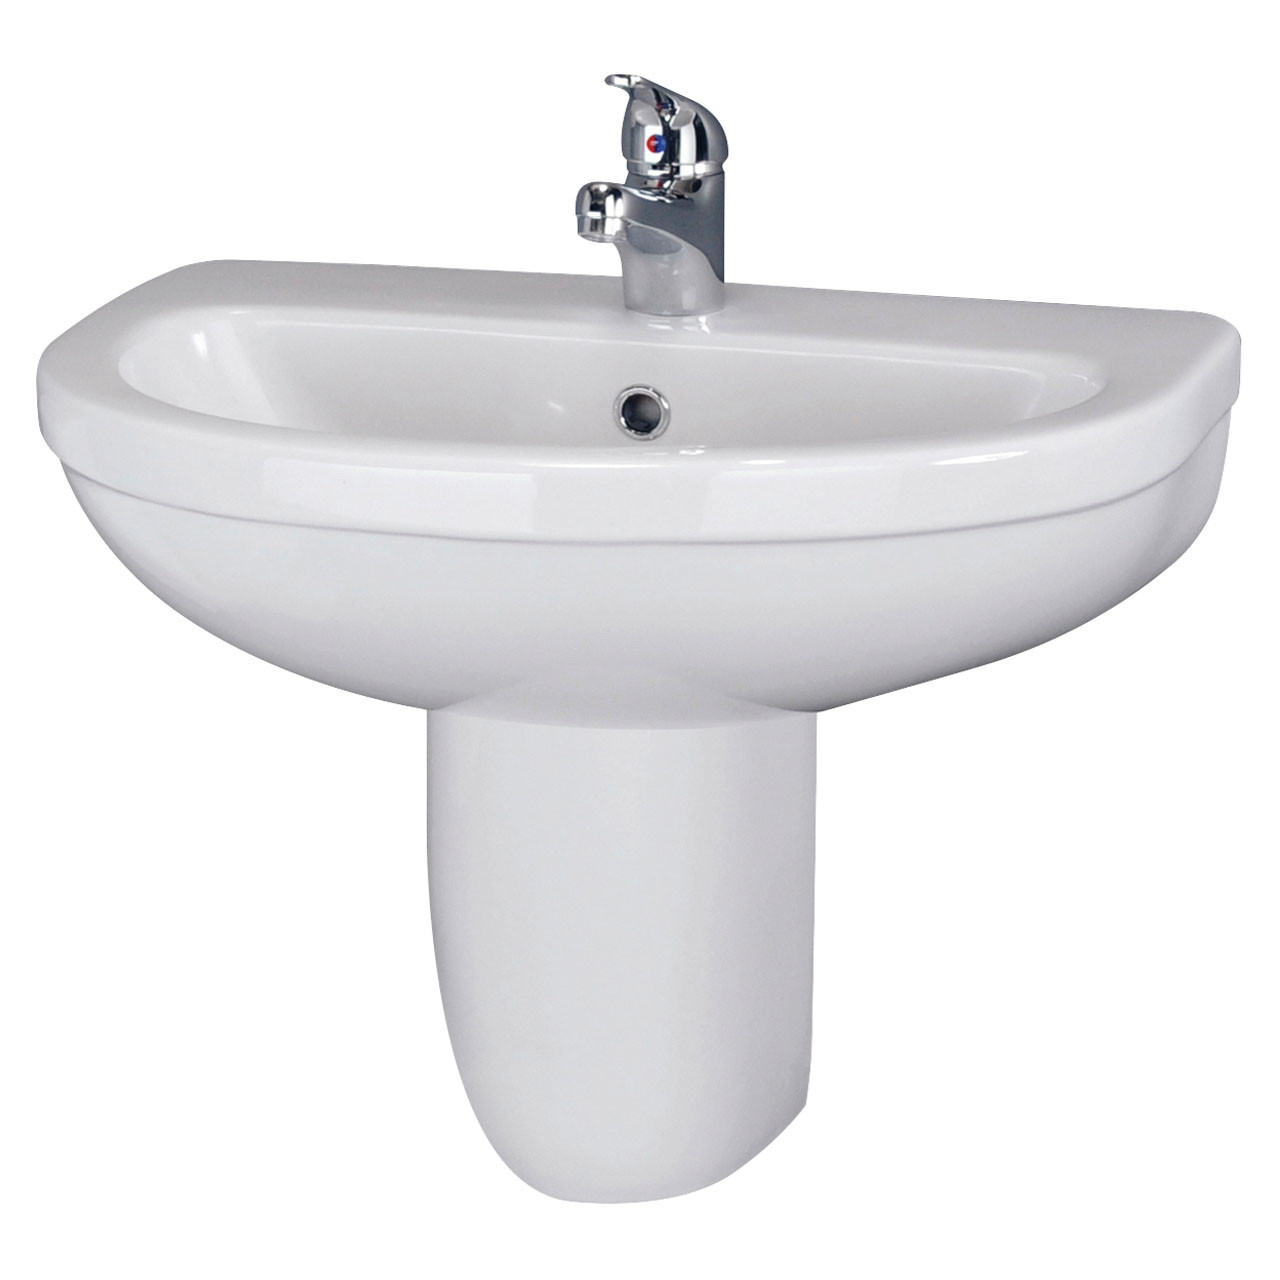 Nuie Ivo 550mm Basin with 1 Tap Hole and Semi Pedestal - CIV004